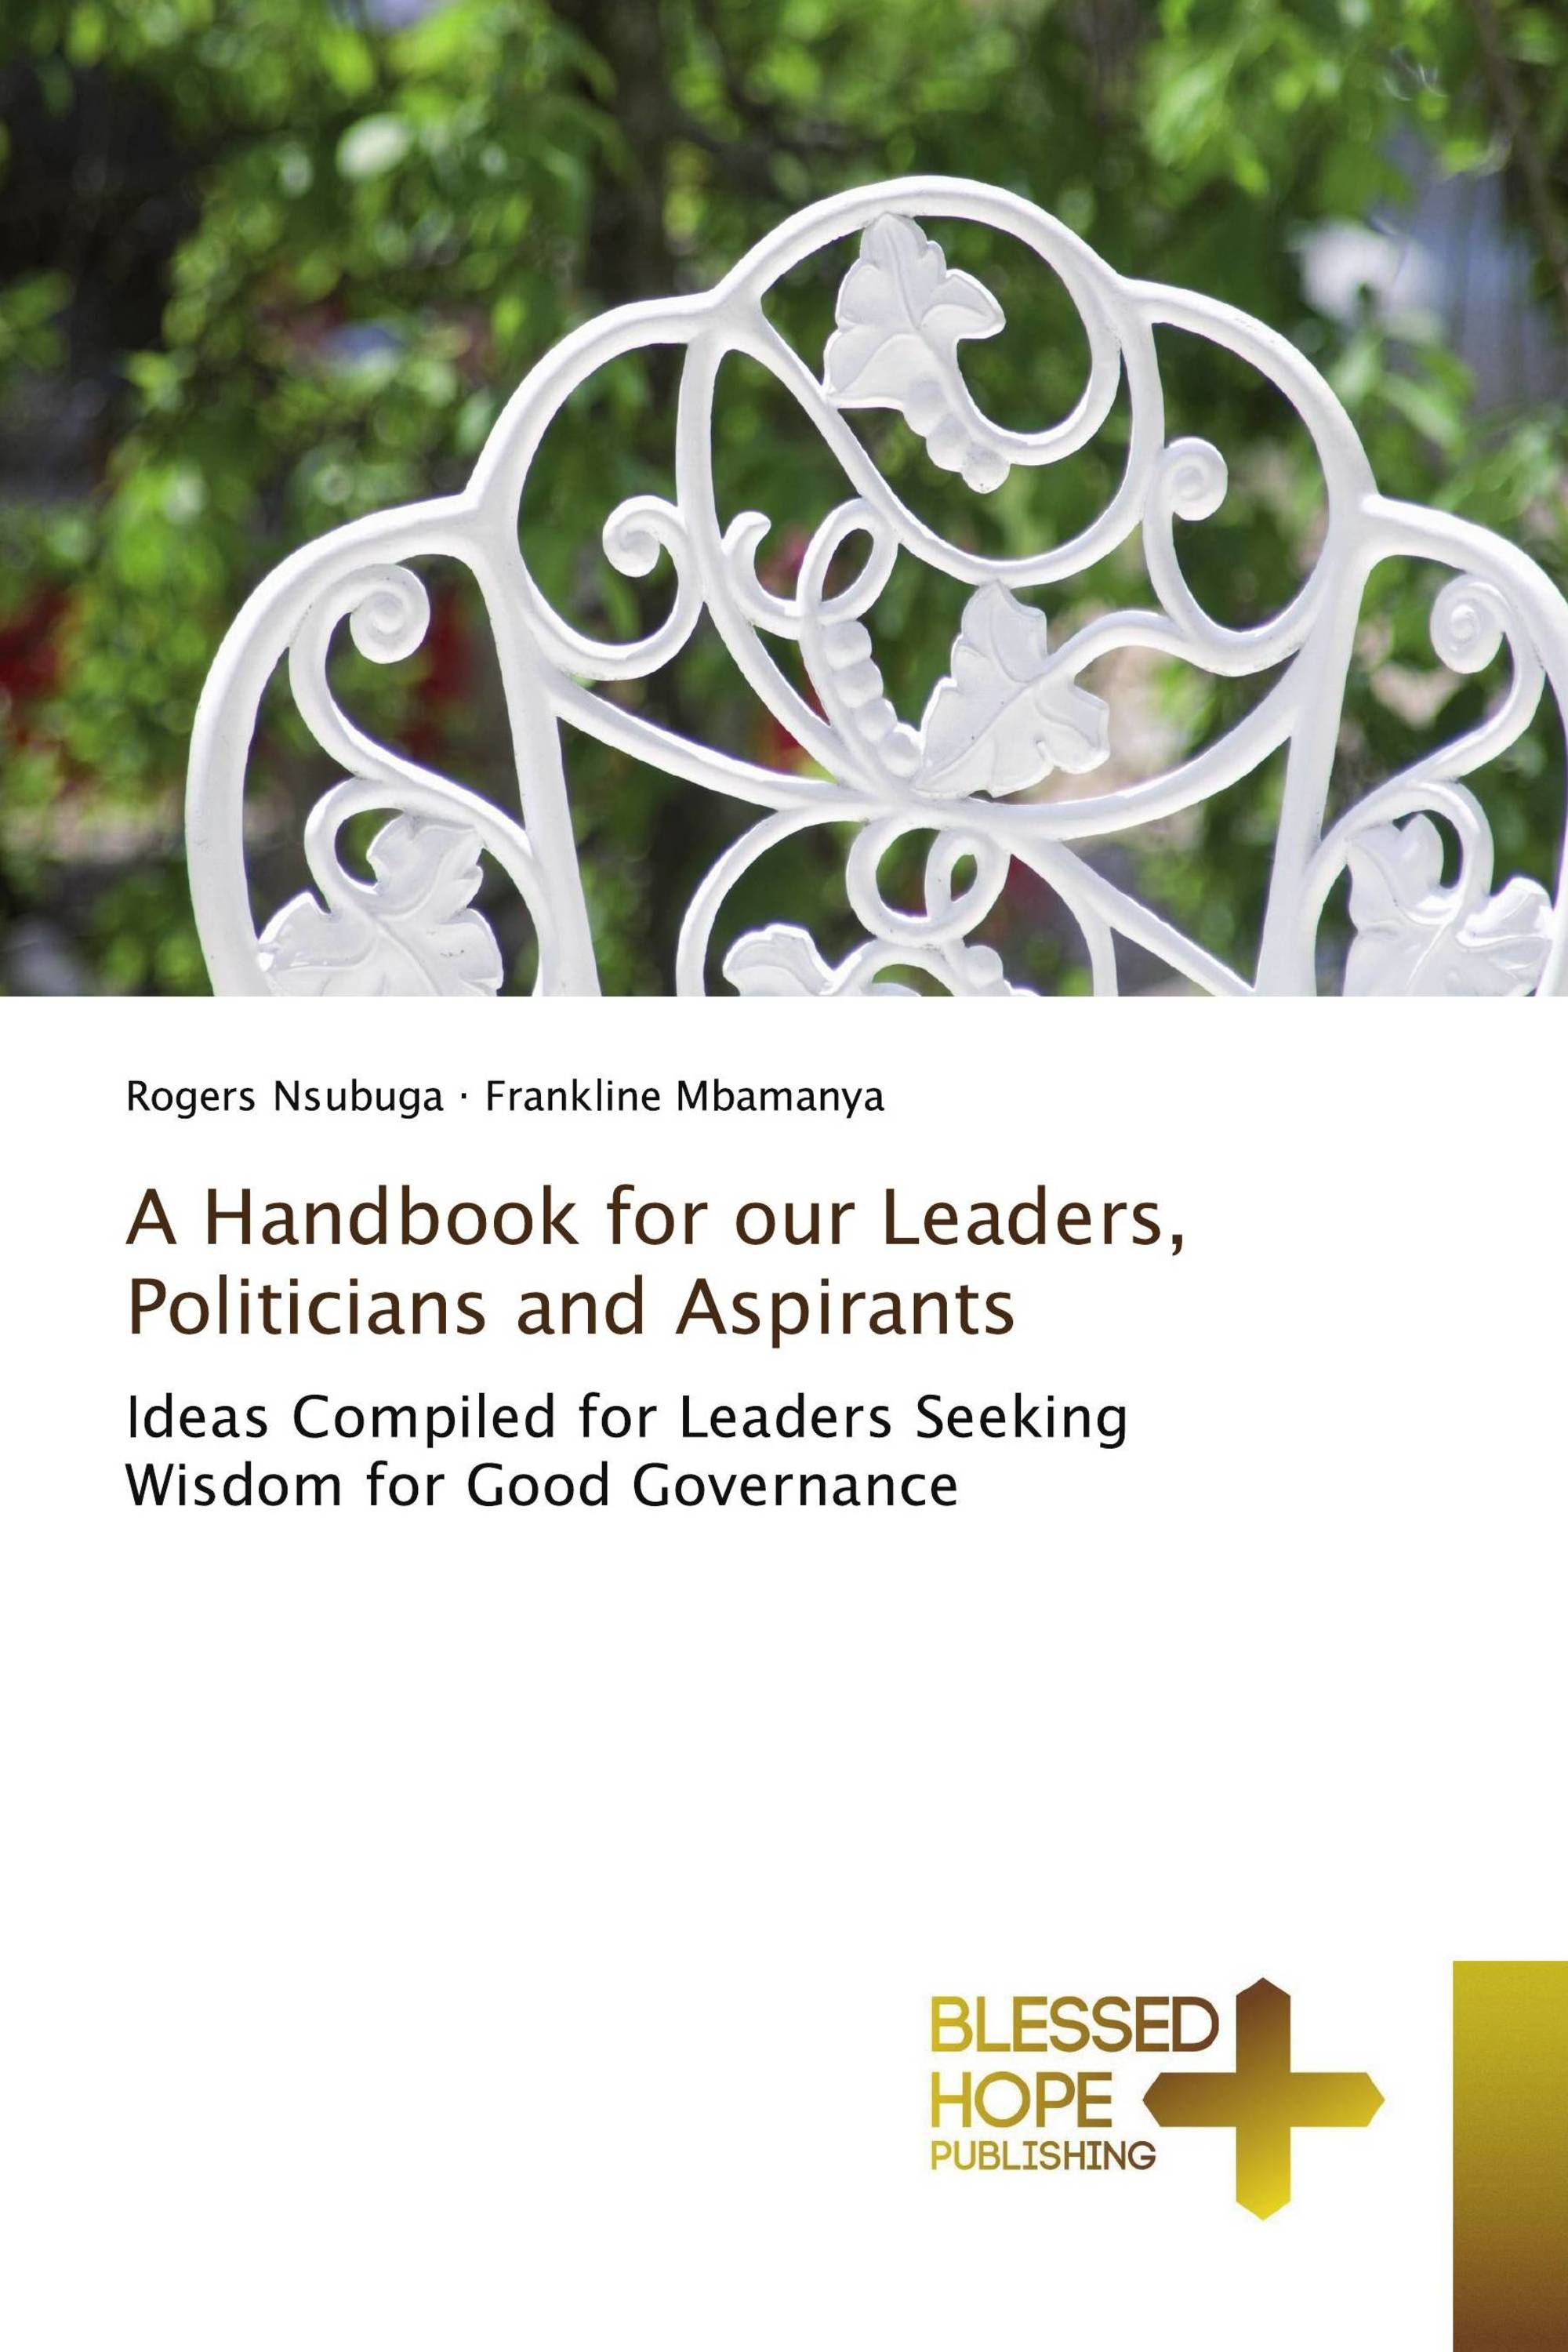 A Handbook for our Leaders, Politicians and Aspirants